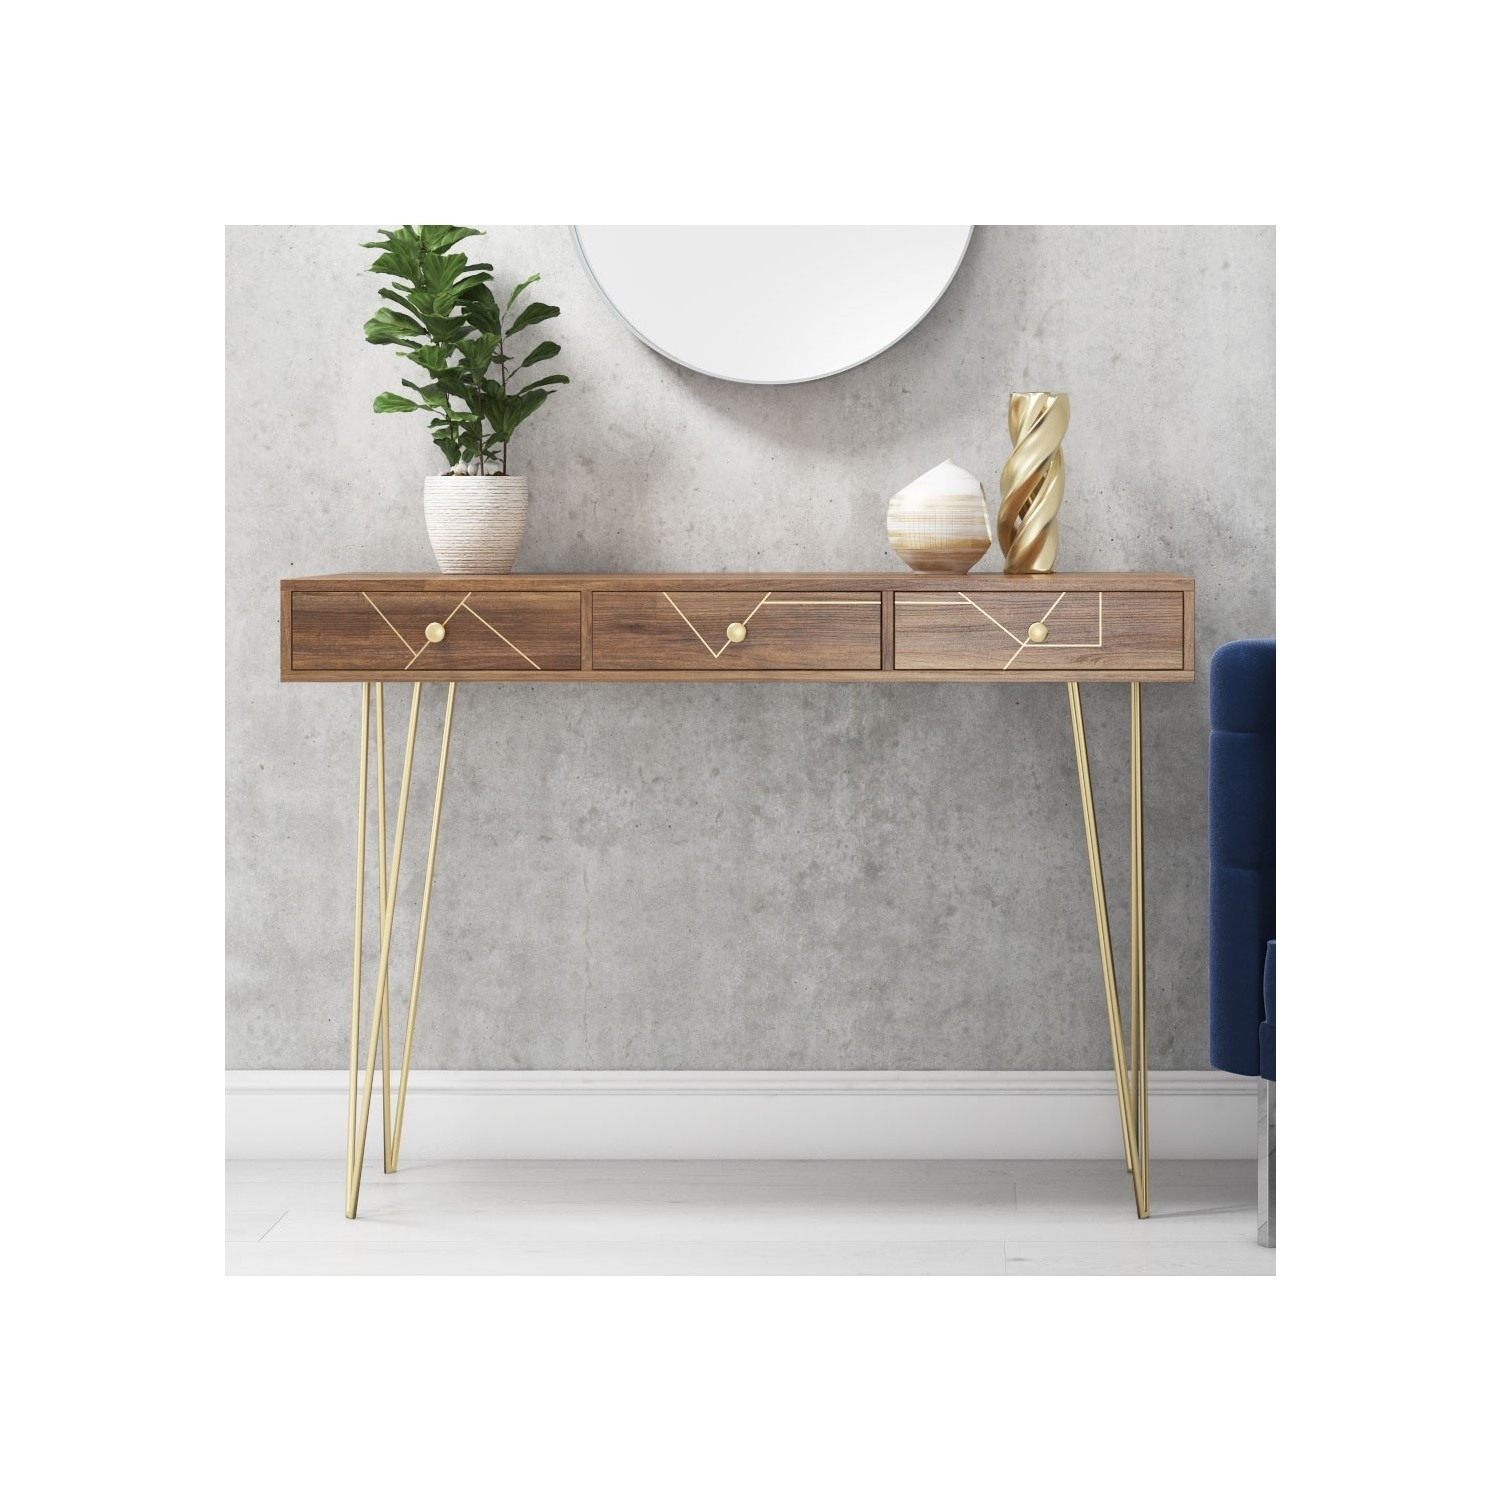 pretty nice 39dde 5b256 Details about Modern Industrial Console Table 3 Drawer Storage Wood Hairpin  Legs Hall Desk